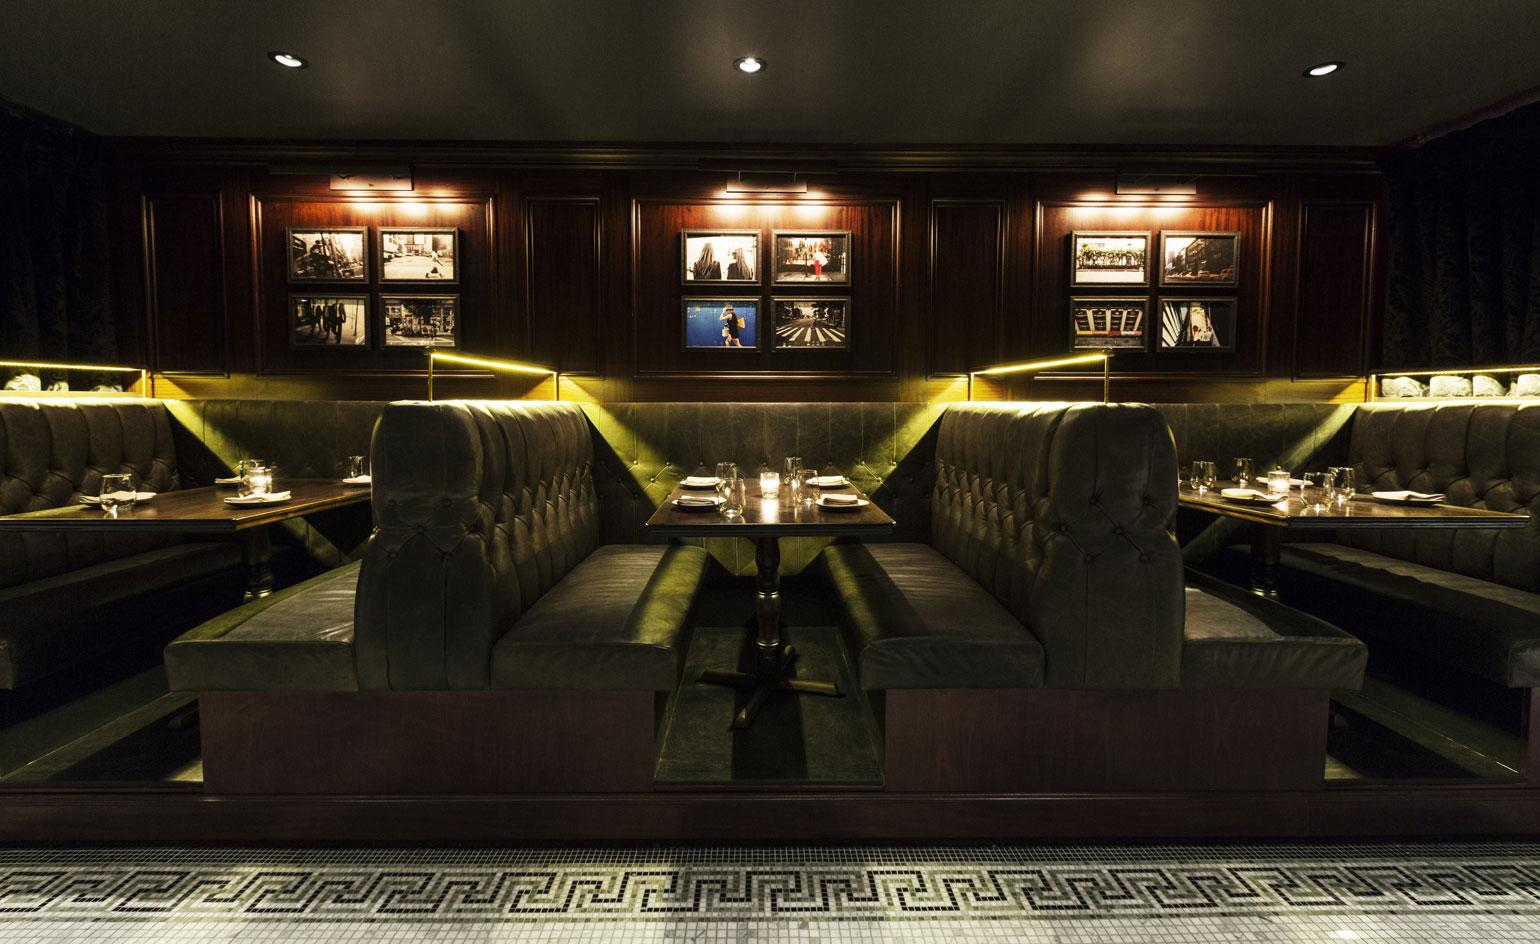 bar nomad york usa restaurant decor bars interior stonehill taylor steal discover projects building